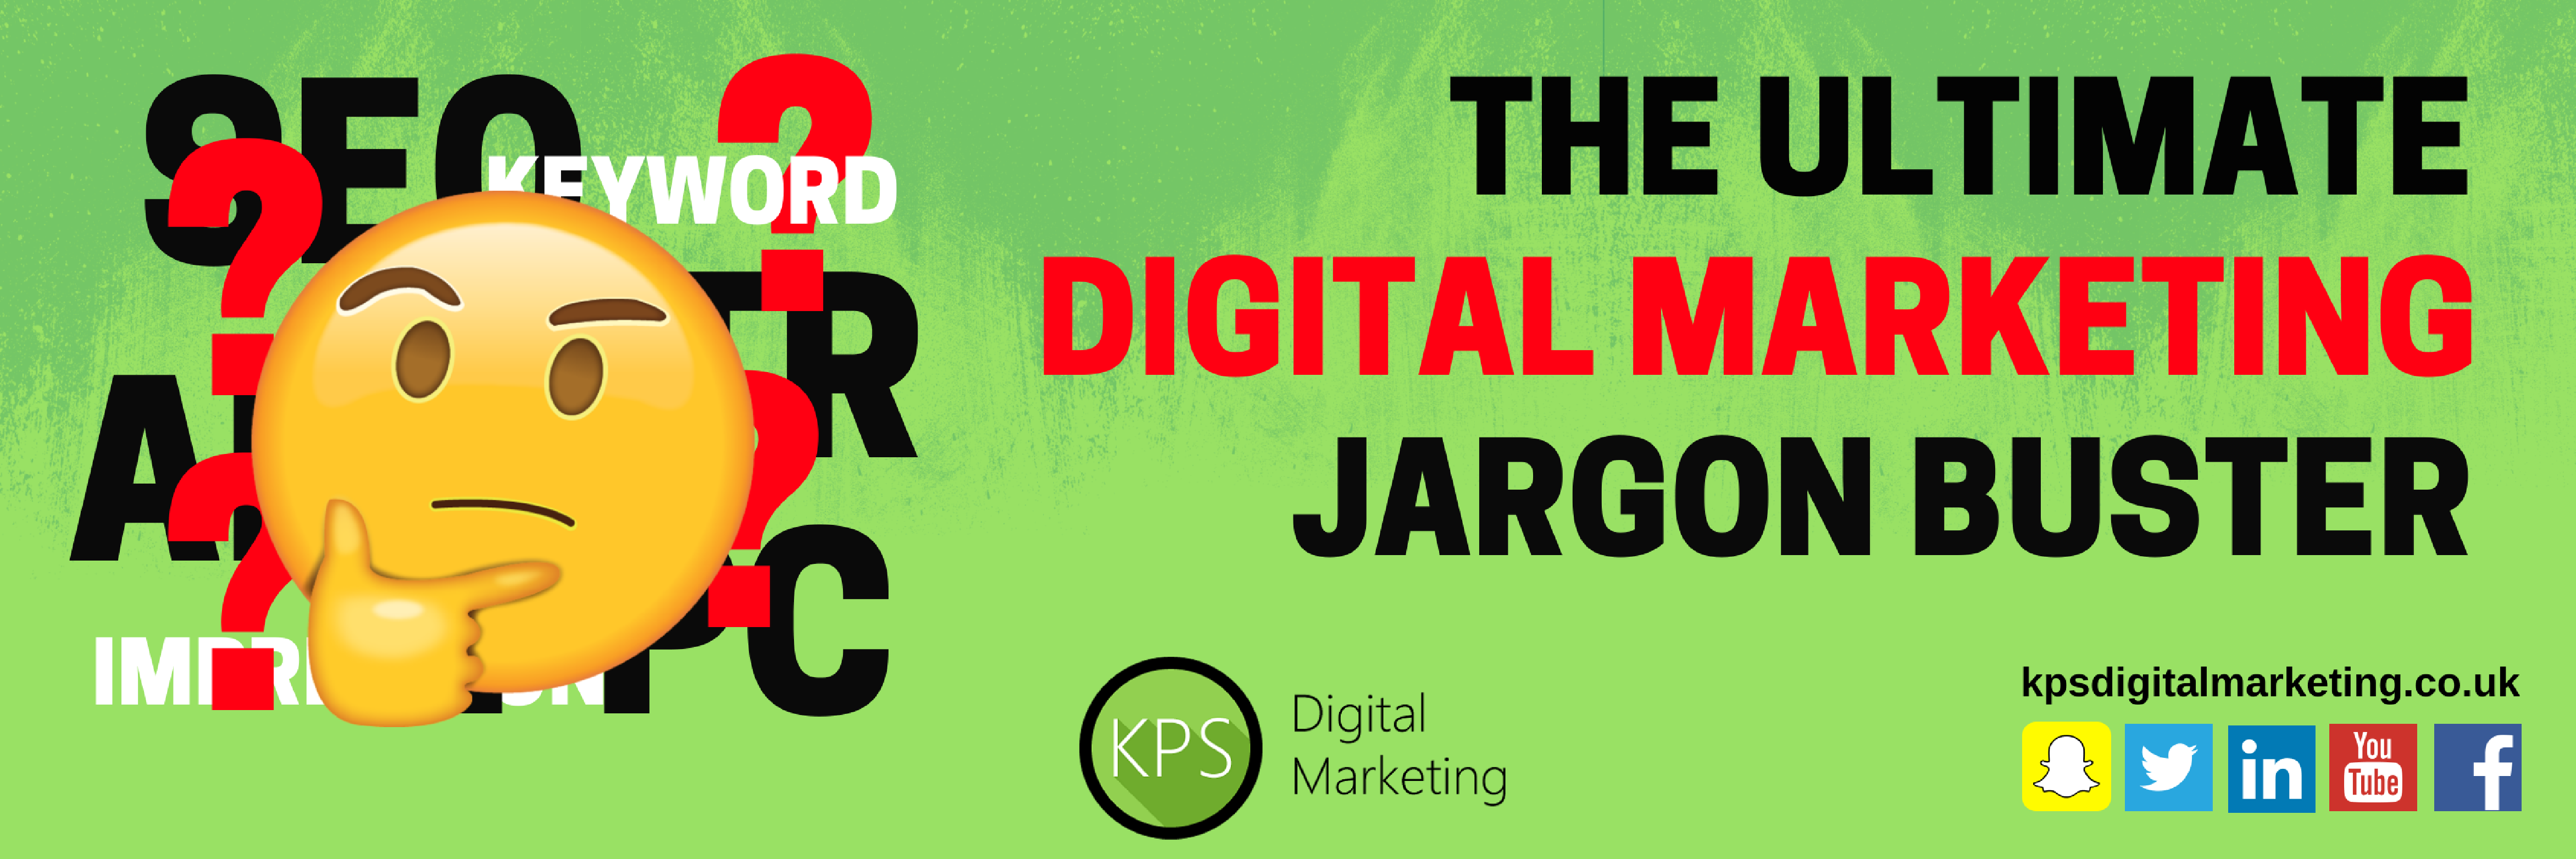 Digital Marketing Jargon Buster